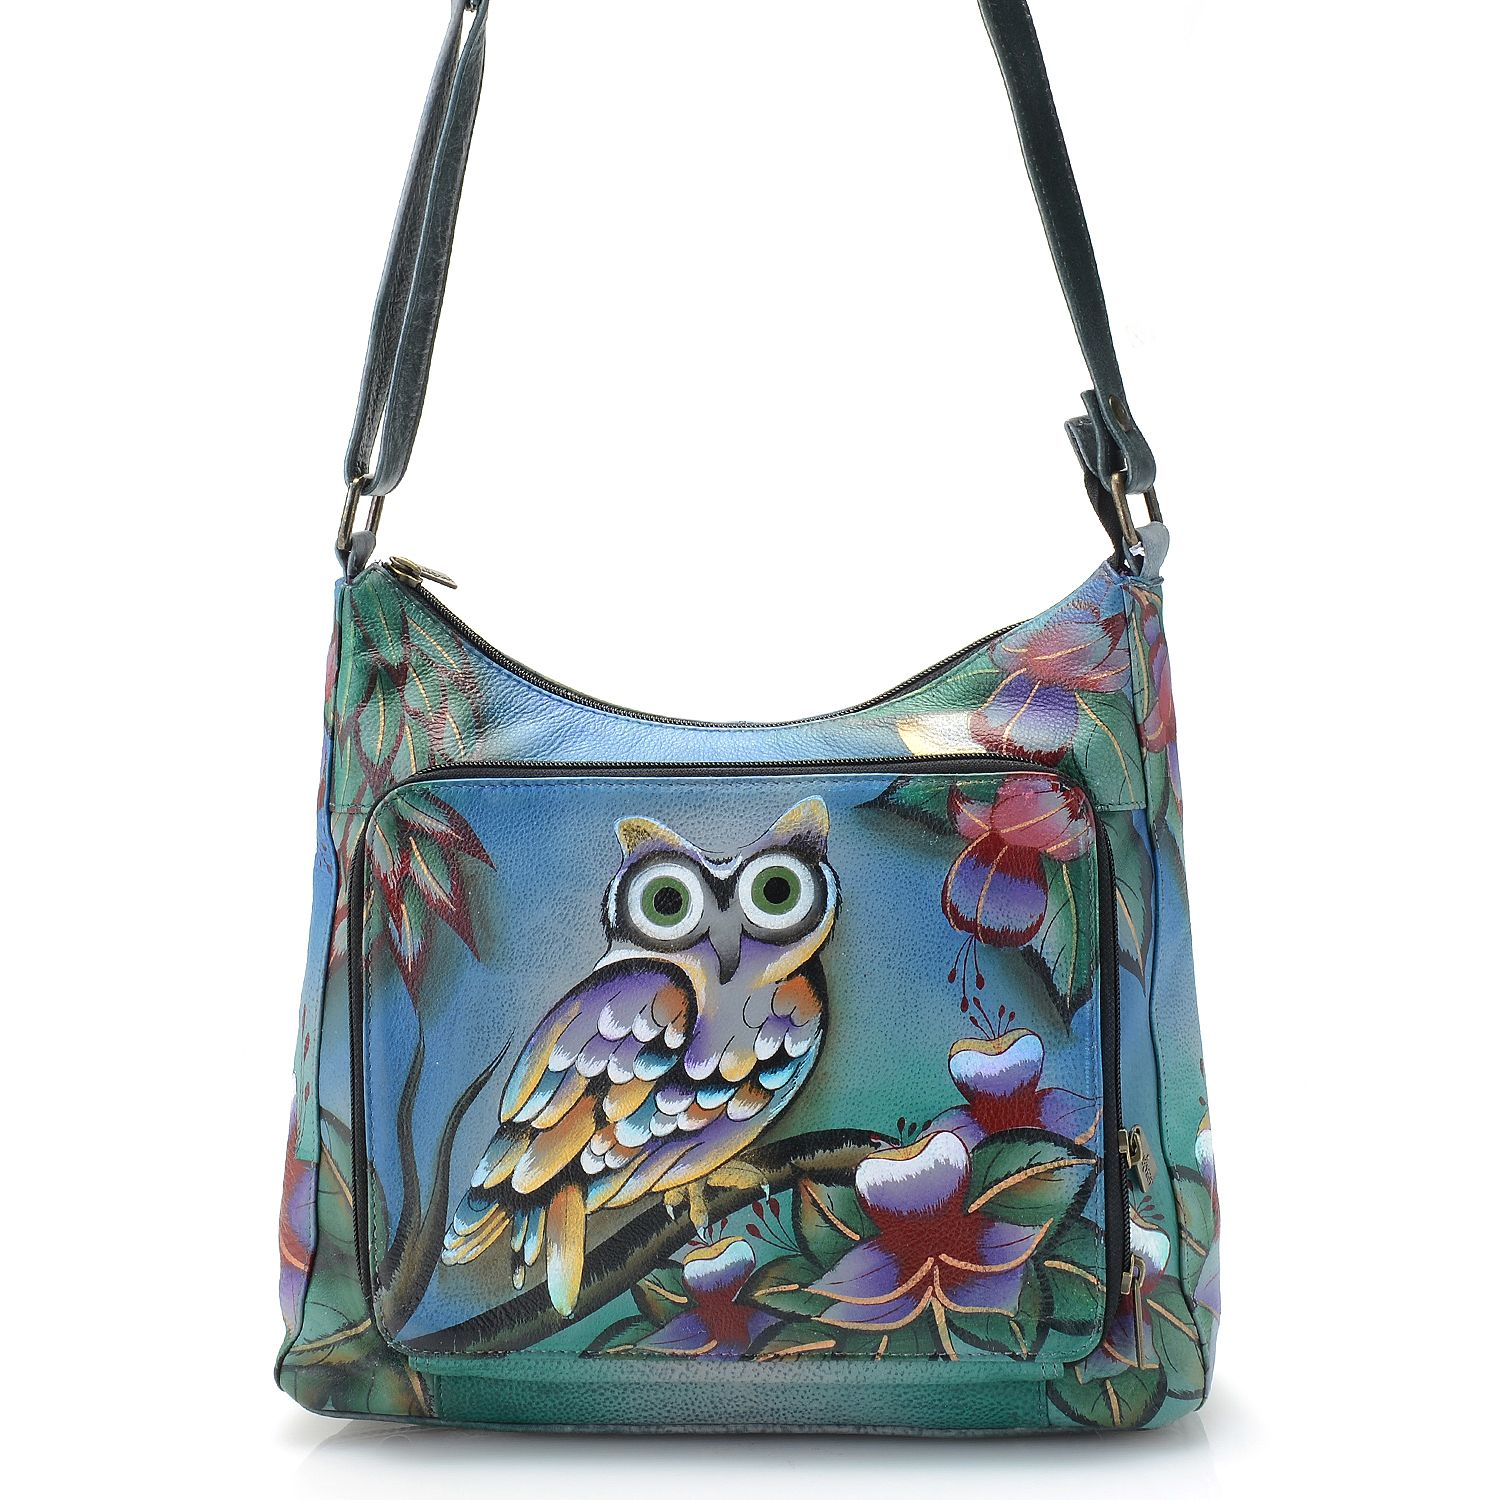 Owl Check Out New Chka Bags On Upi S Forums